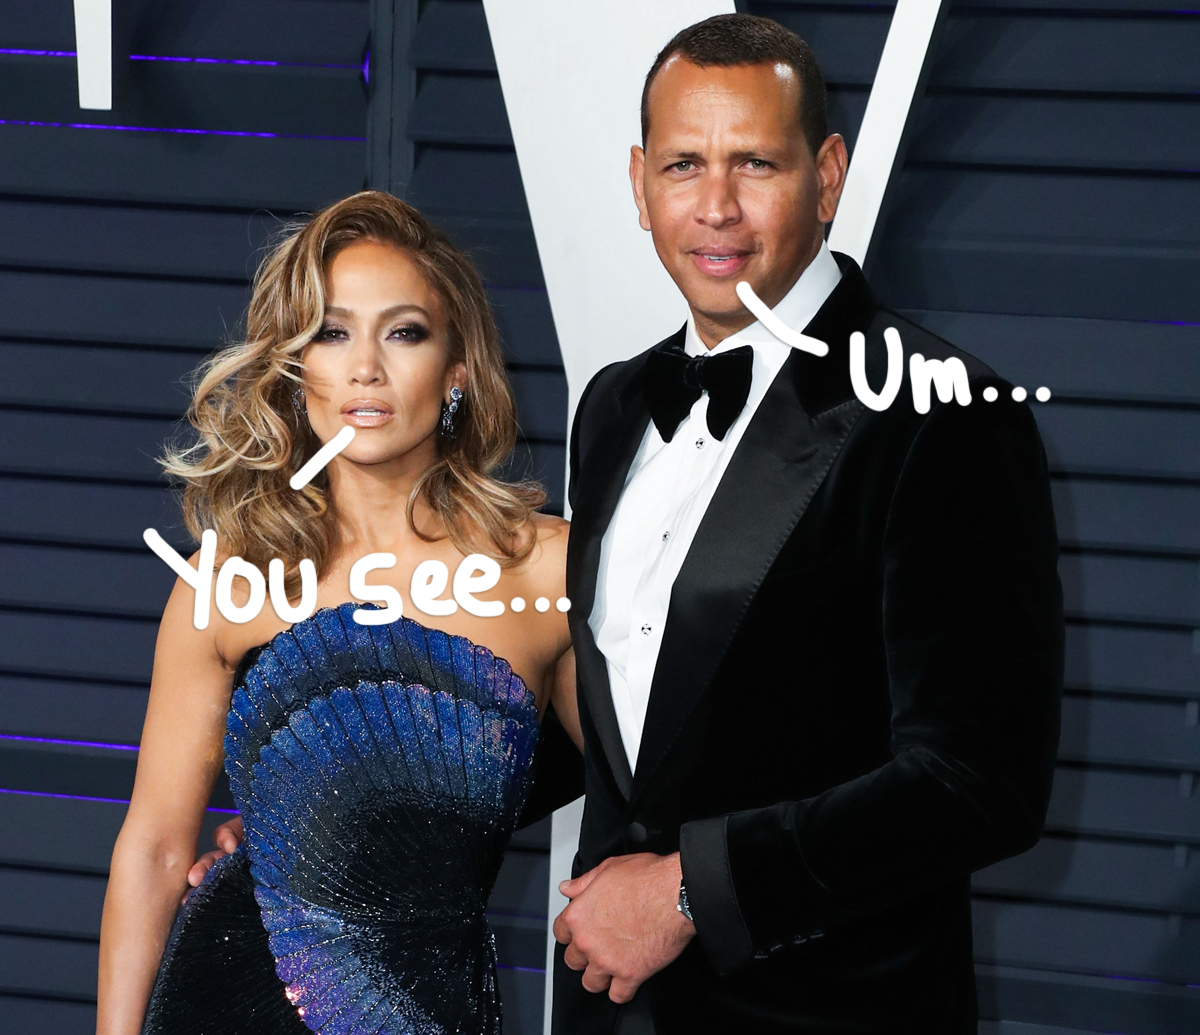 Jennifer Lopez Ditches Engagement Ring In New Pics -- Is She Officially Done With A-Rod?!